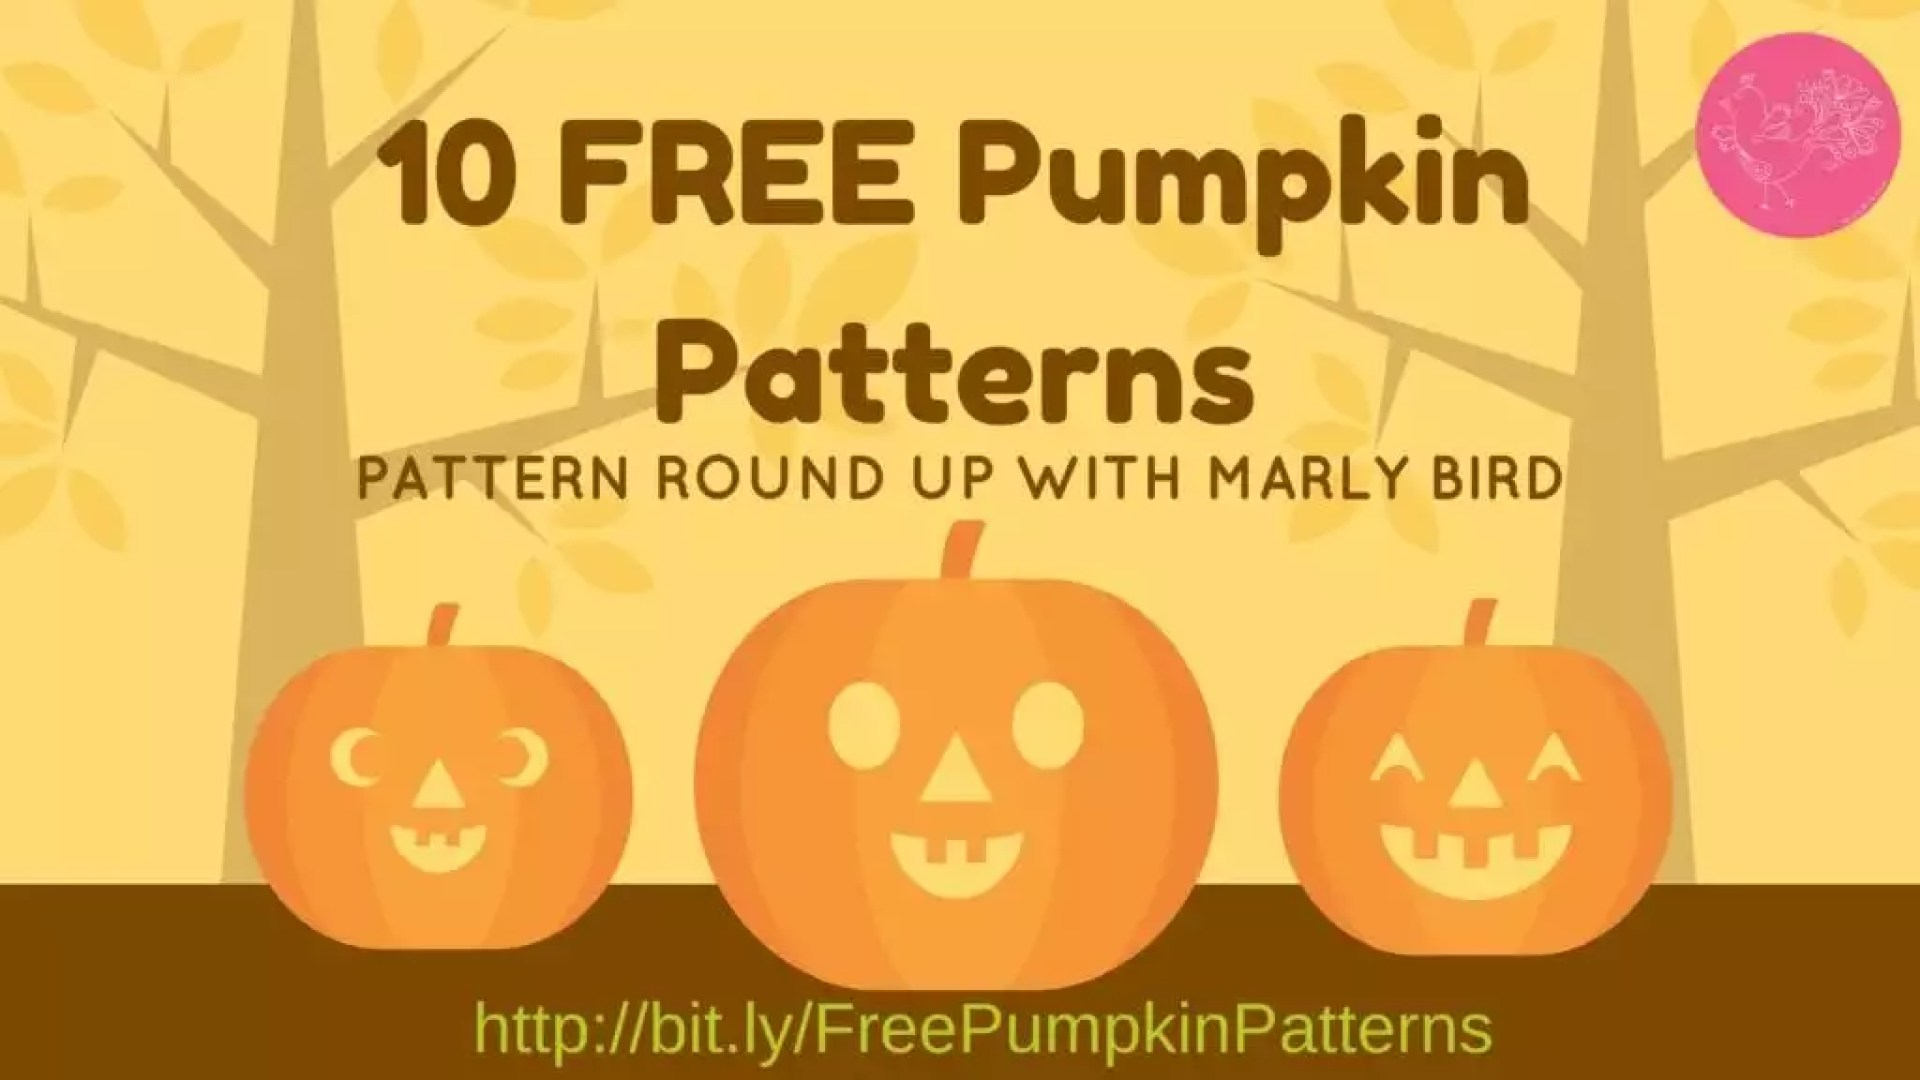 10 FREE Pumpkin Patterns